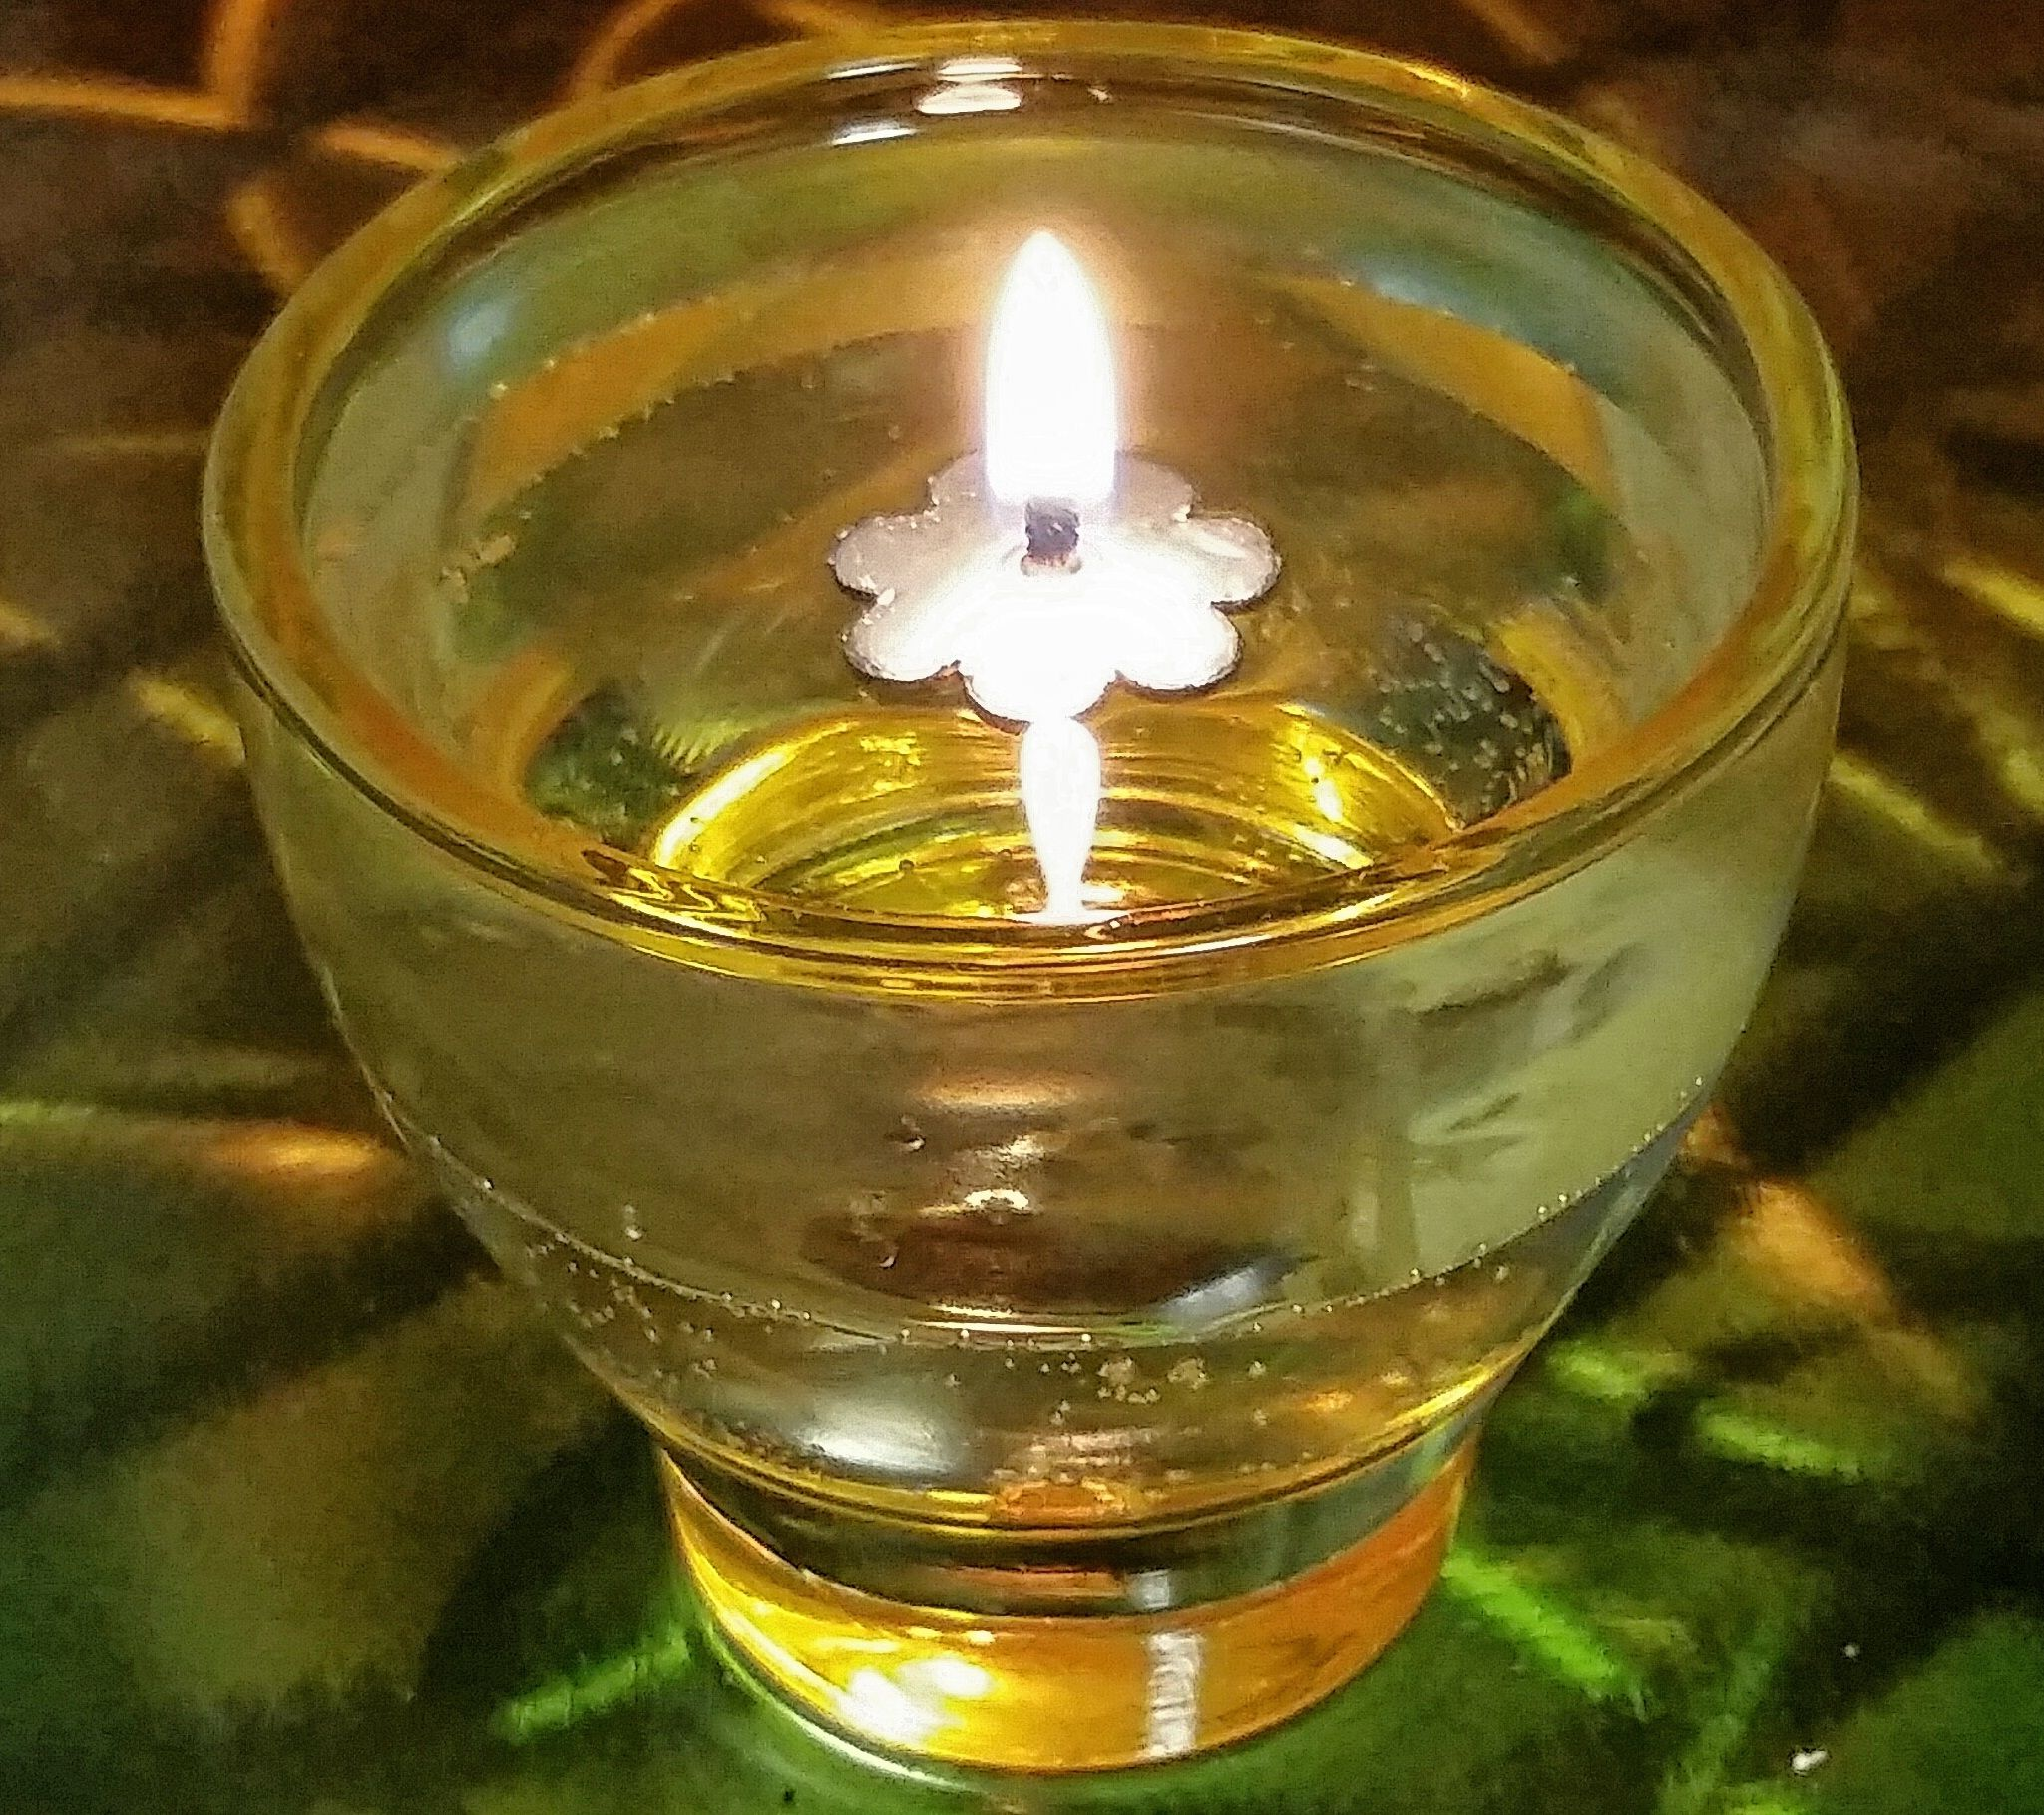 Illuminate Your Home With The Soft Glow Of An Oil Water Lamp Very Simple To Set Up In A Heat Resistant Glass Contain Candle Lamp Diy Diy Candles Candle Jars